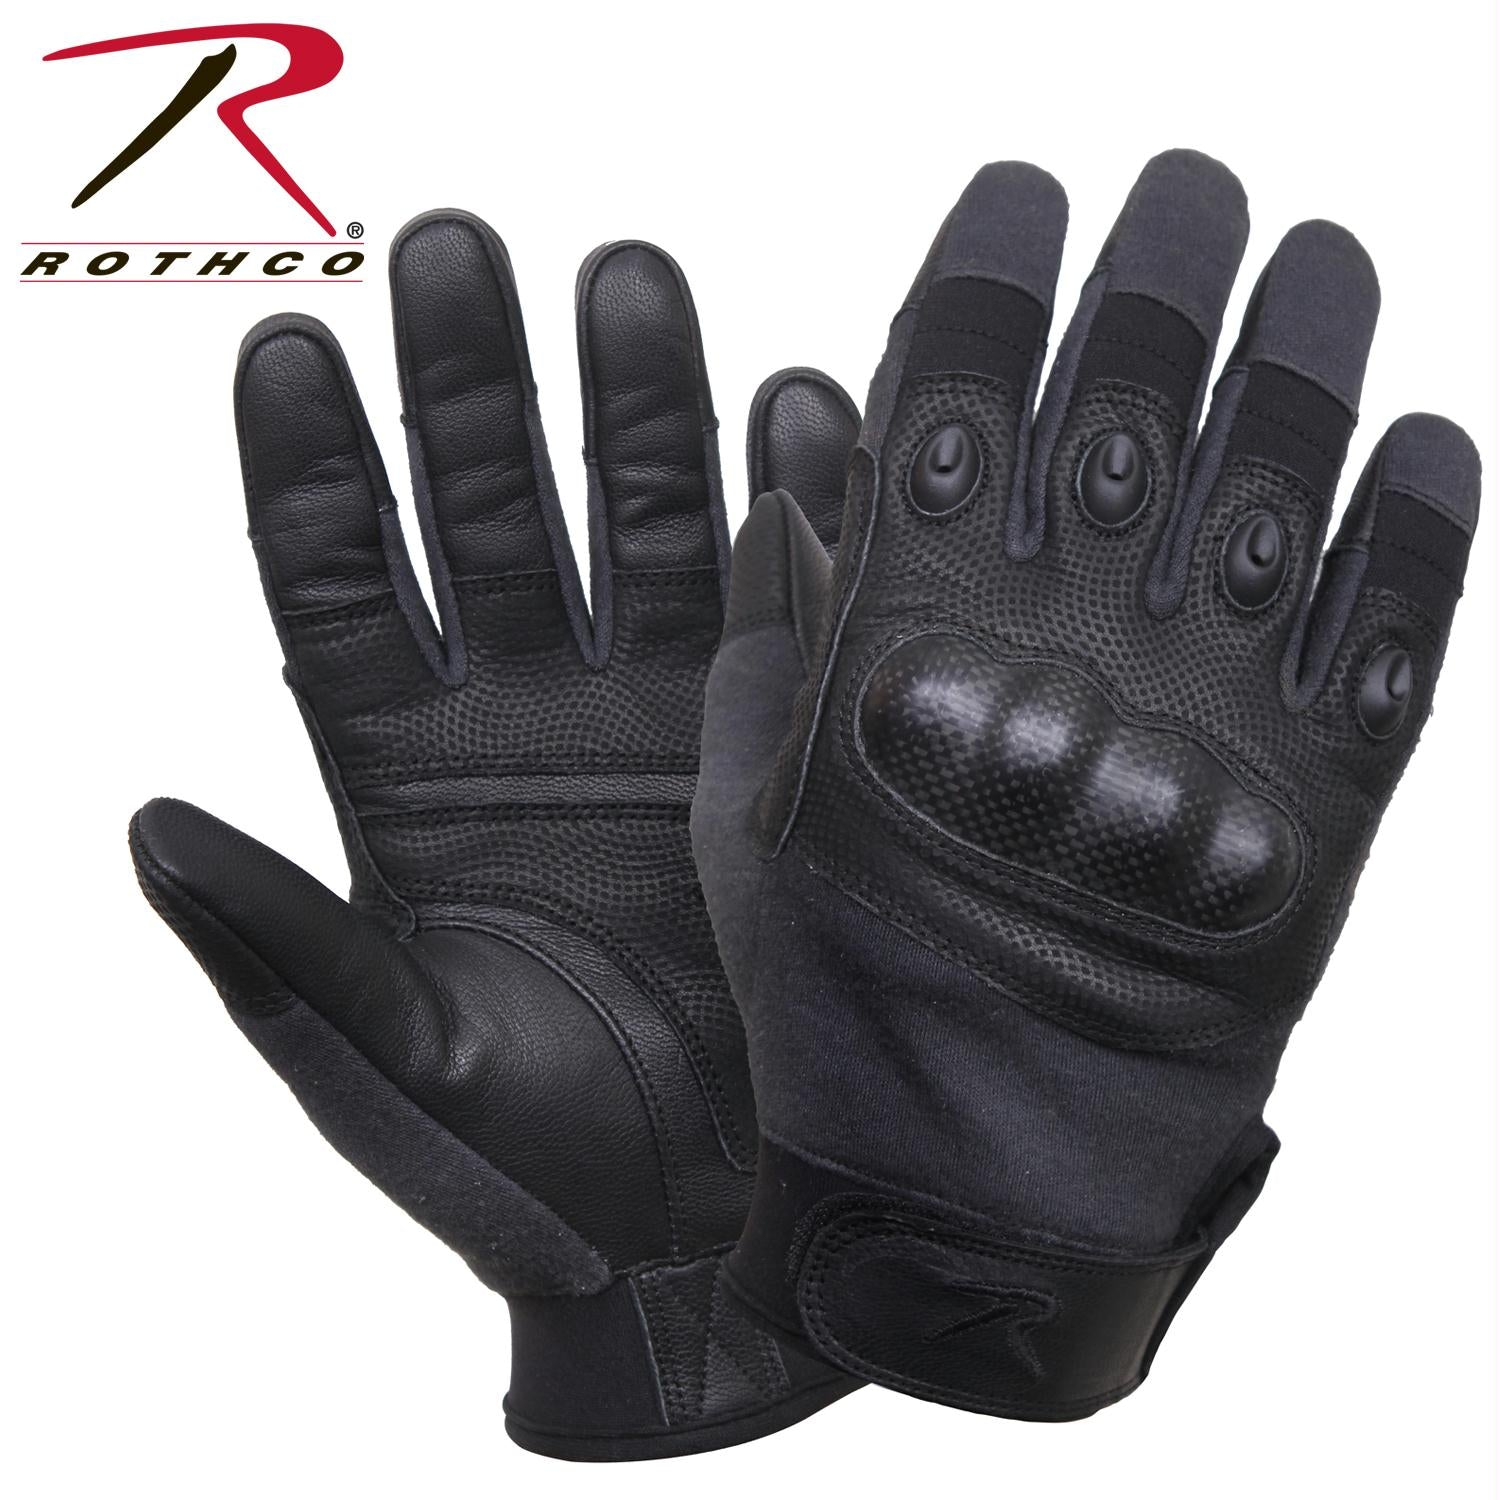 Rothco's Carbon Fiber Hard Knuckle Cut/Fire Resistant Gloves - 2XL